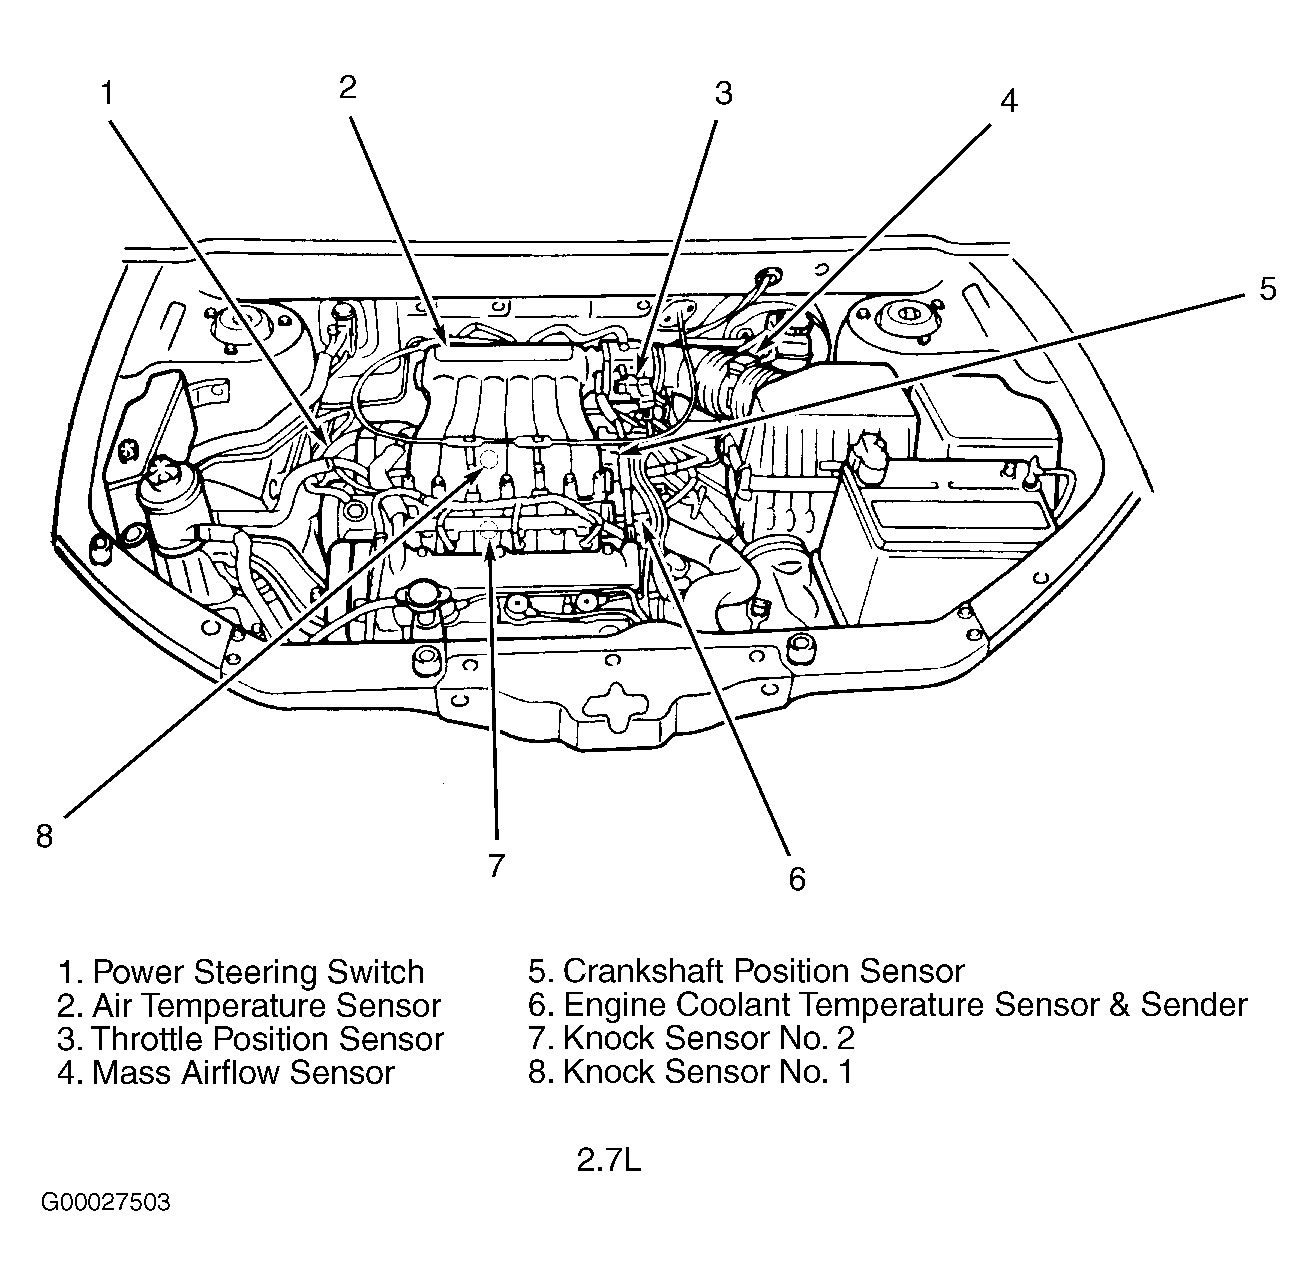 Knock Sensor Location 2001 Hyundai Santa Fe: Good Day! Hope You regarding 2002 Hyundai Santa Fe Parts Diagram